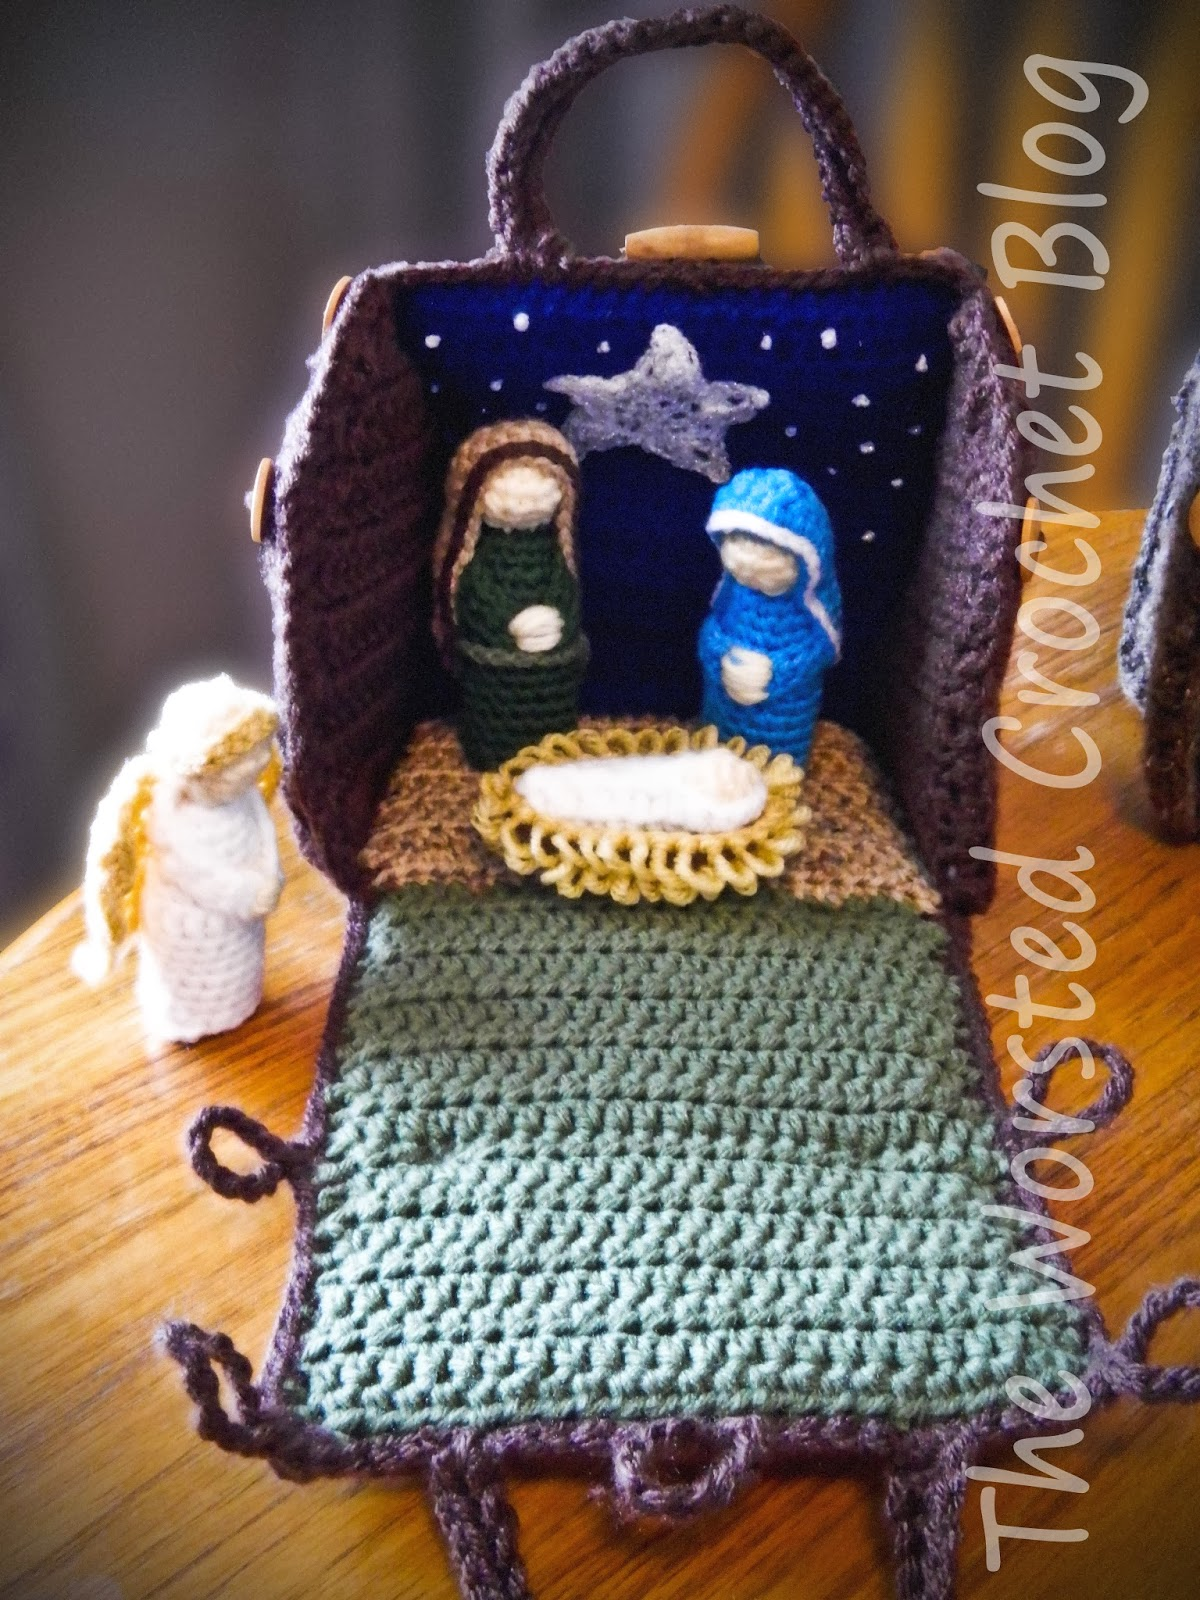 Free Crochet Patterns Nativity Scene : The Worsted Crochet Blog: Crochet Nativity Set (Part 2 ...